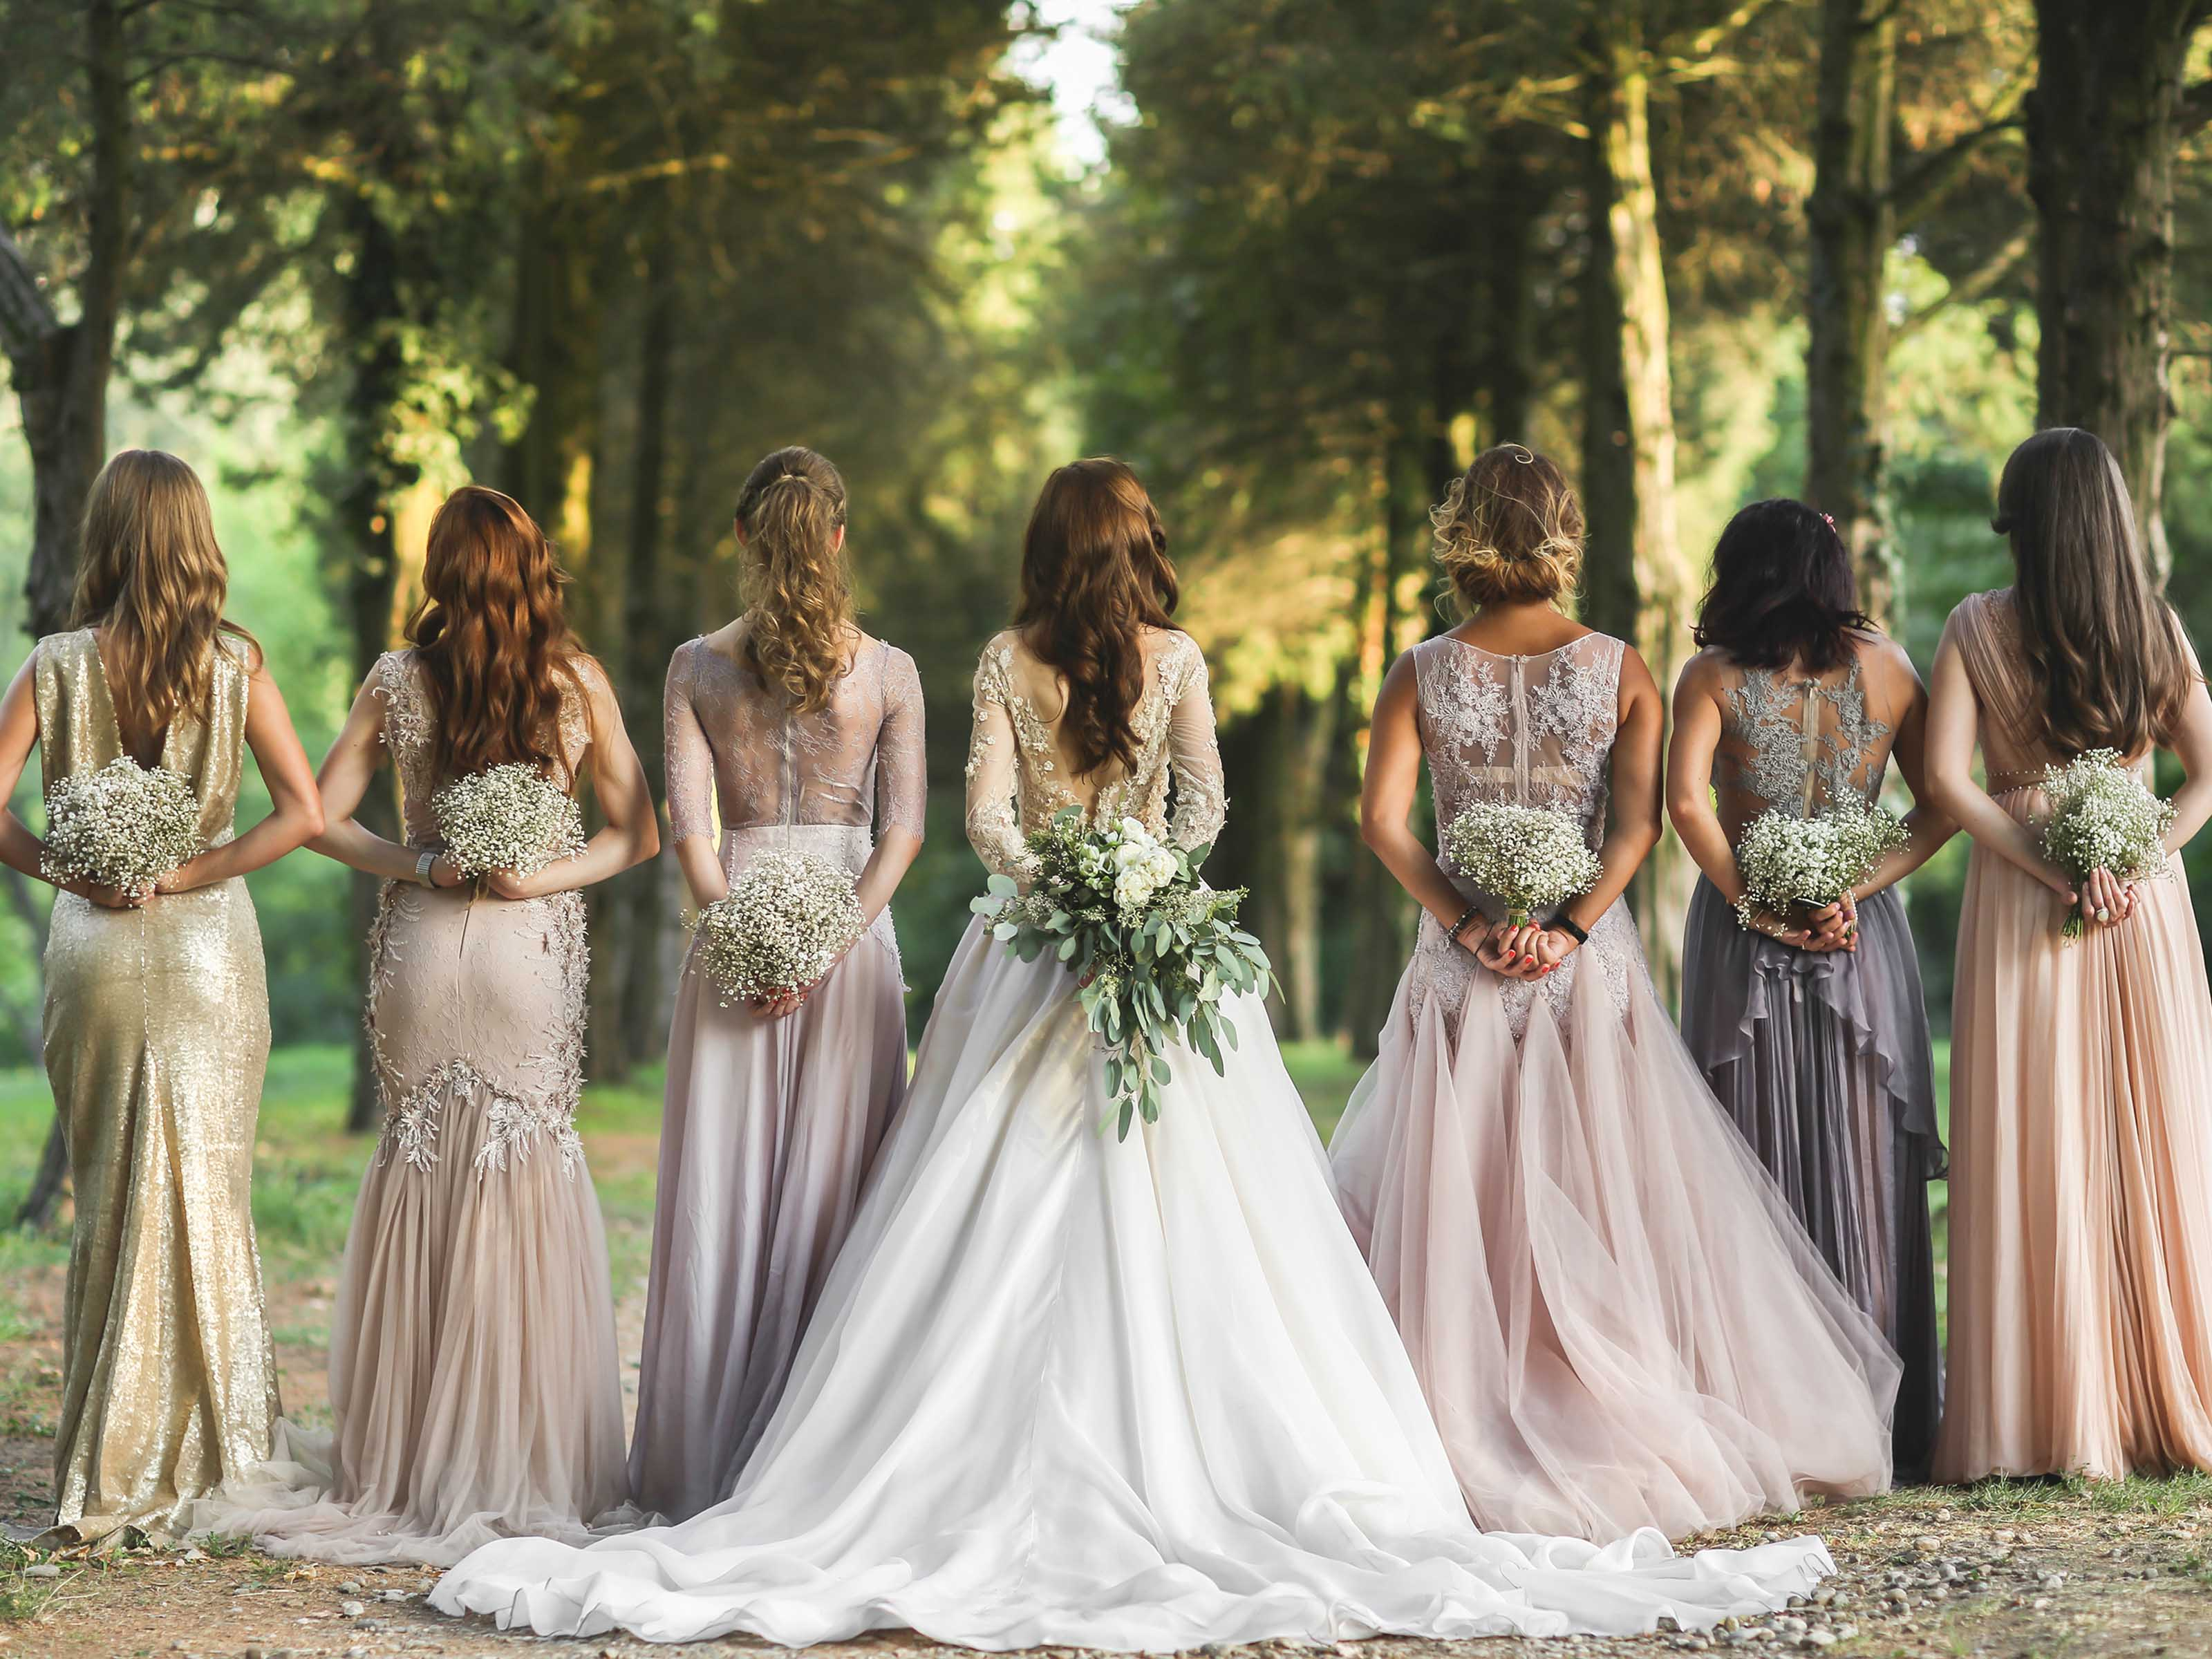 Winter Wedding Guide - Bridesmaid Dresses